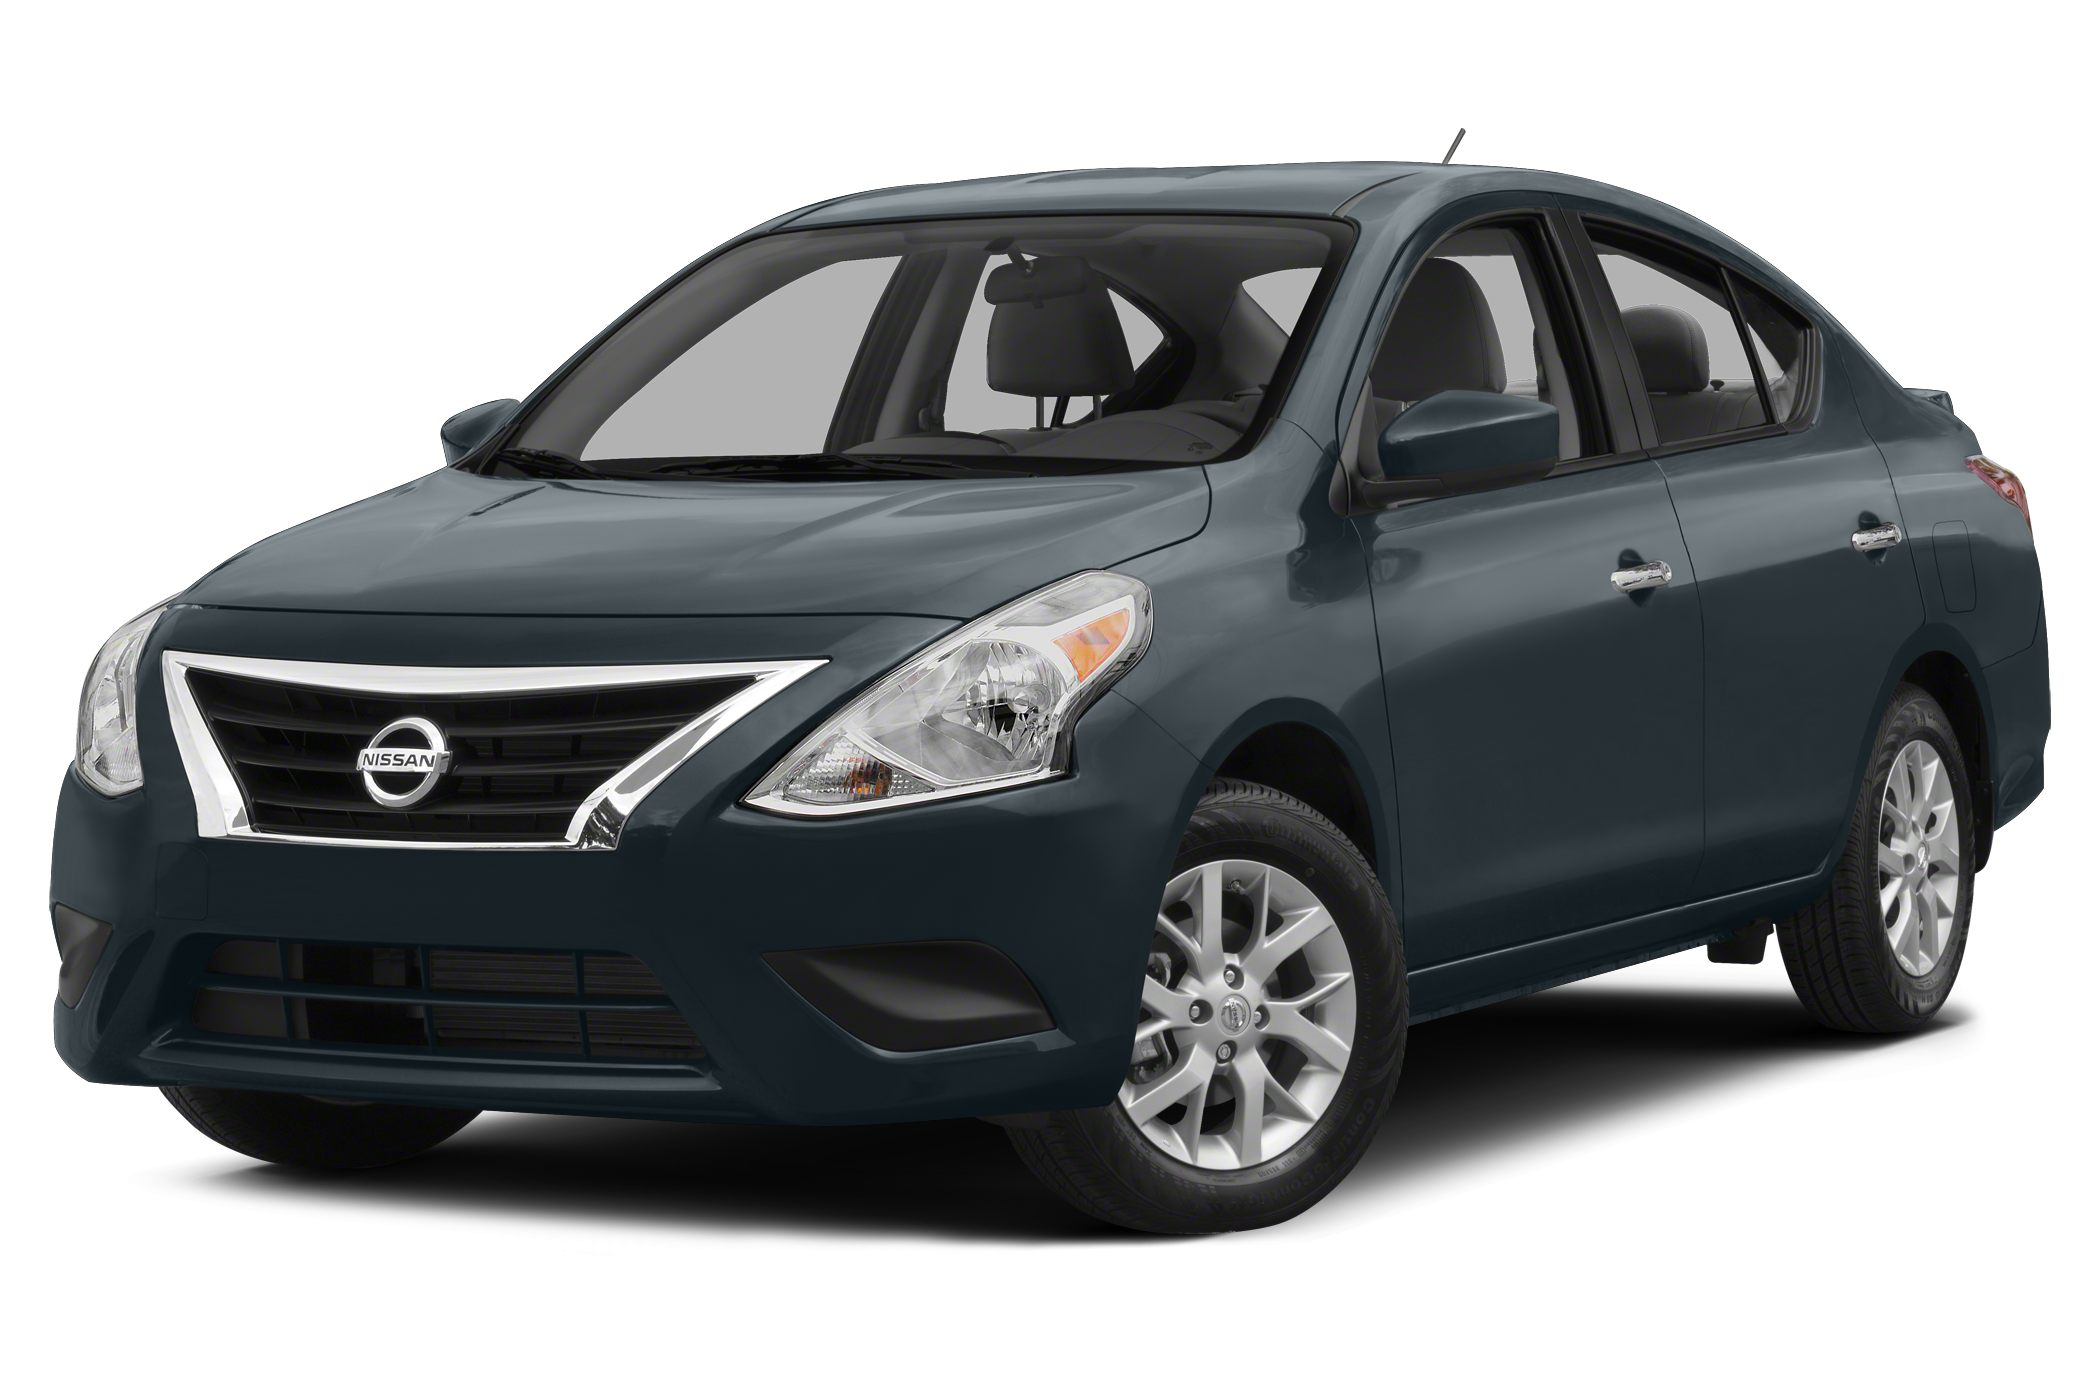 2015 Nissan Versa 1.6 S+ Sedan for sale in Clanton for $15,185 with 5 miles